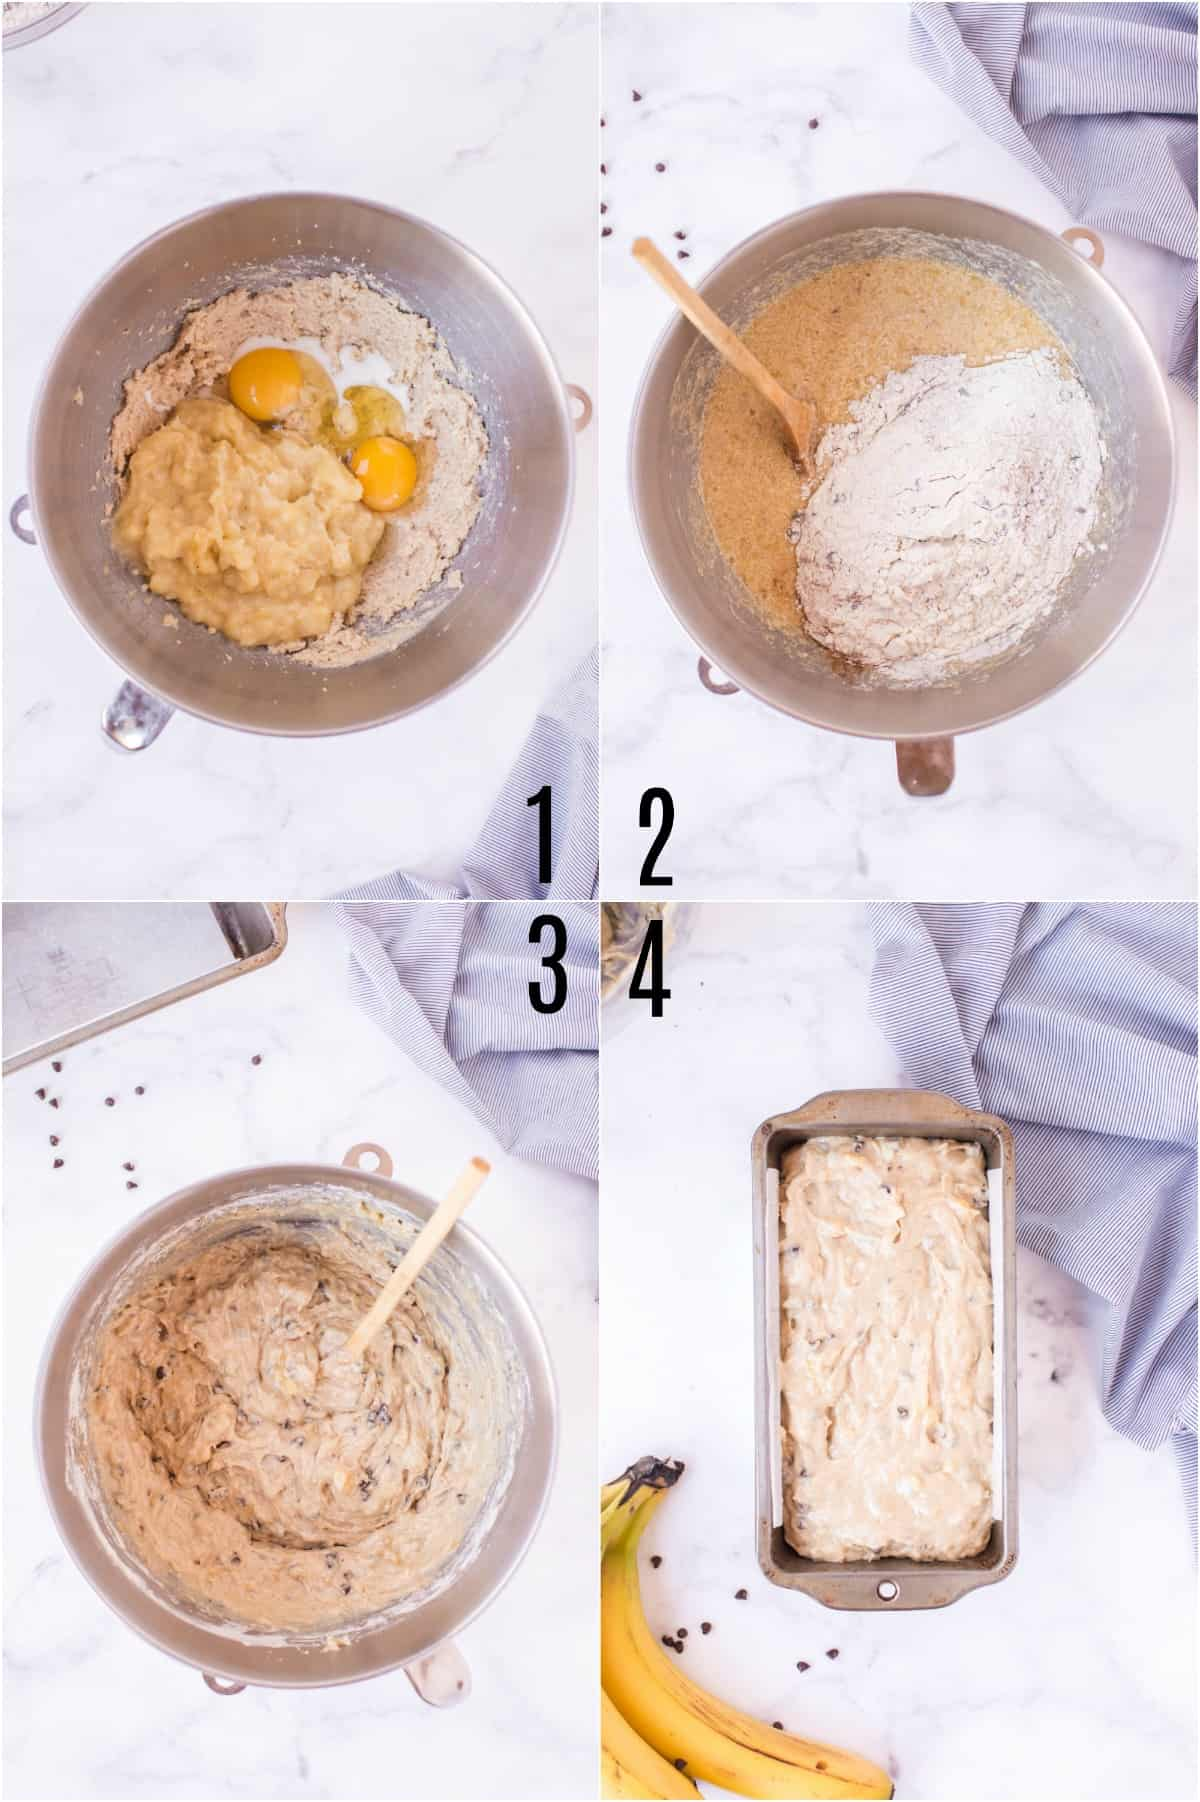 Step by step photos showing how to make chocolate chip banana bread.